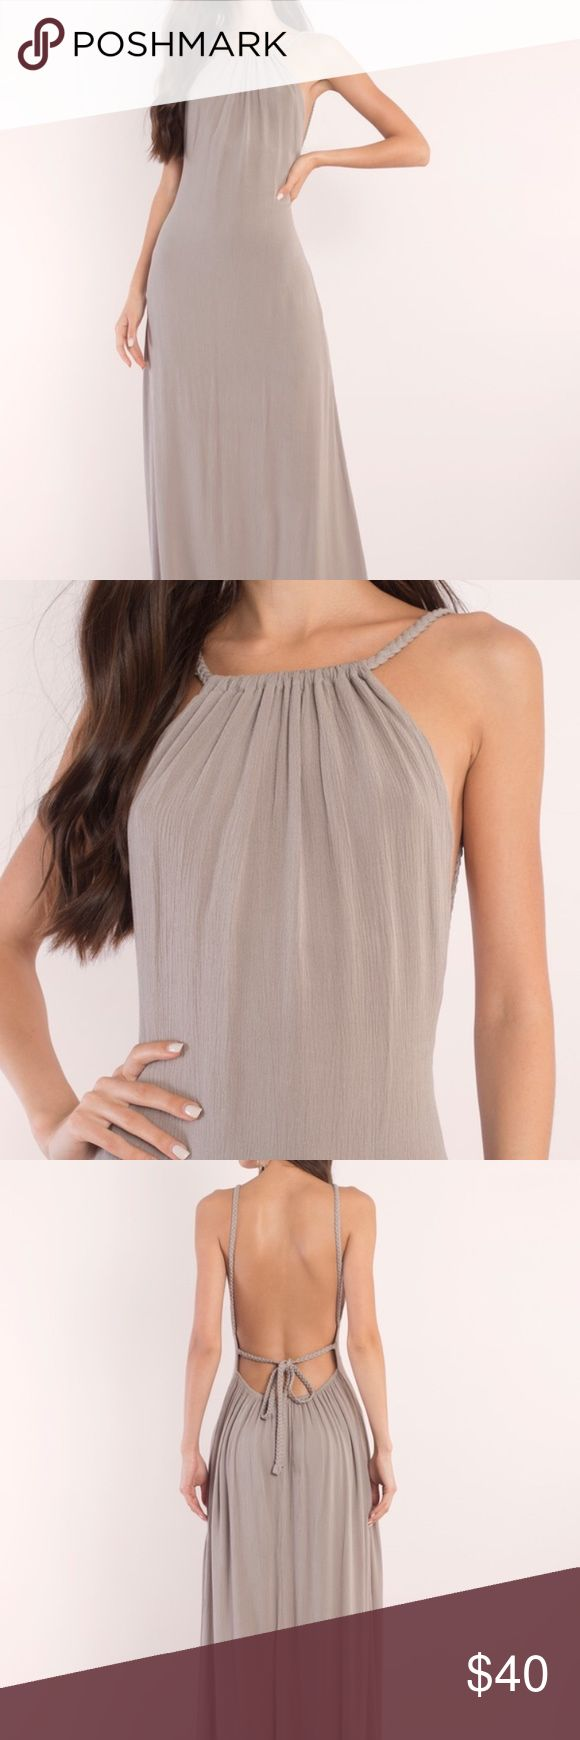 Lake grey halter maxi dress Beautiful halter dress that's perfect for date night, weddings, or a night out on the town. Ties in the back. Maxi length. Never worn so asking what I paid for it. Tobi Dresses Maxi